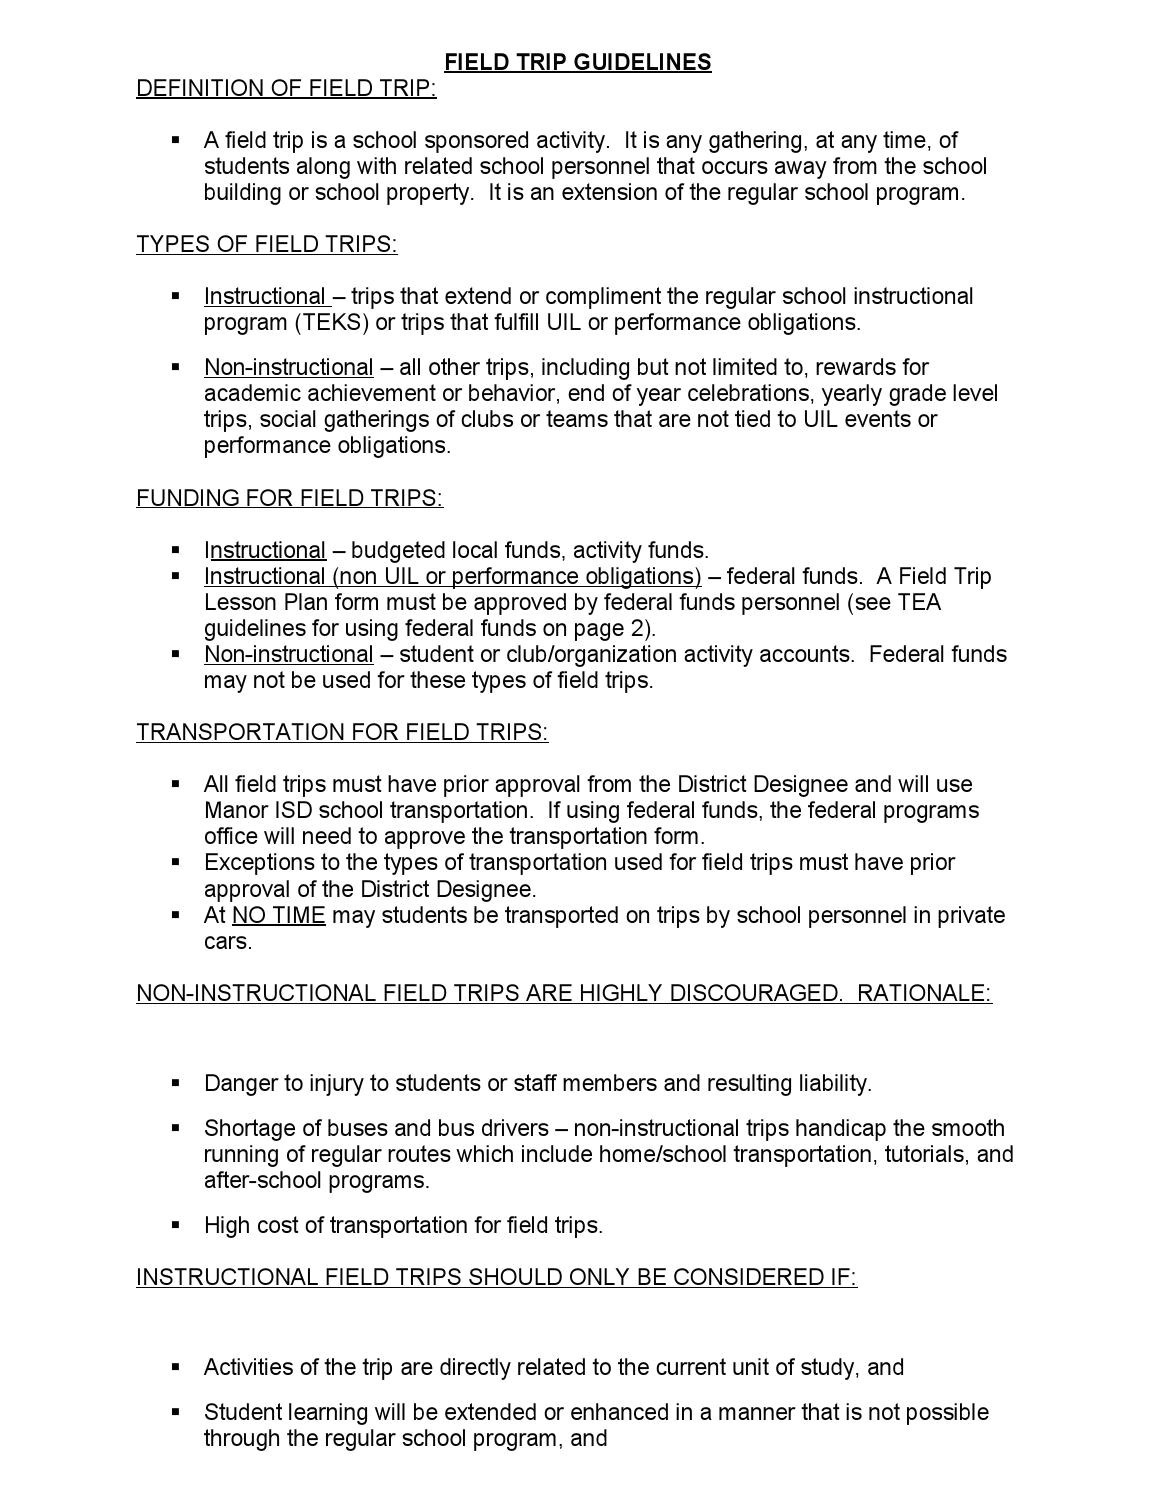 Field Trip Lesson Plan Template Field Trip Guidelines and Lesson Plan form 1 by Manor